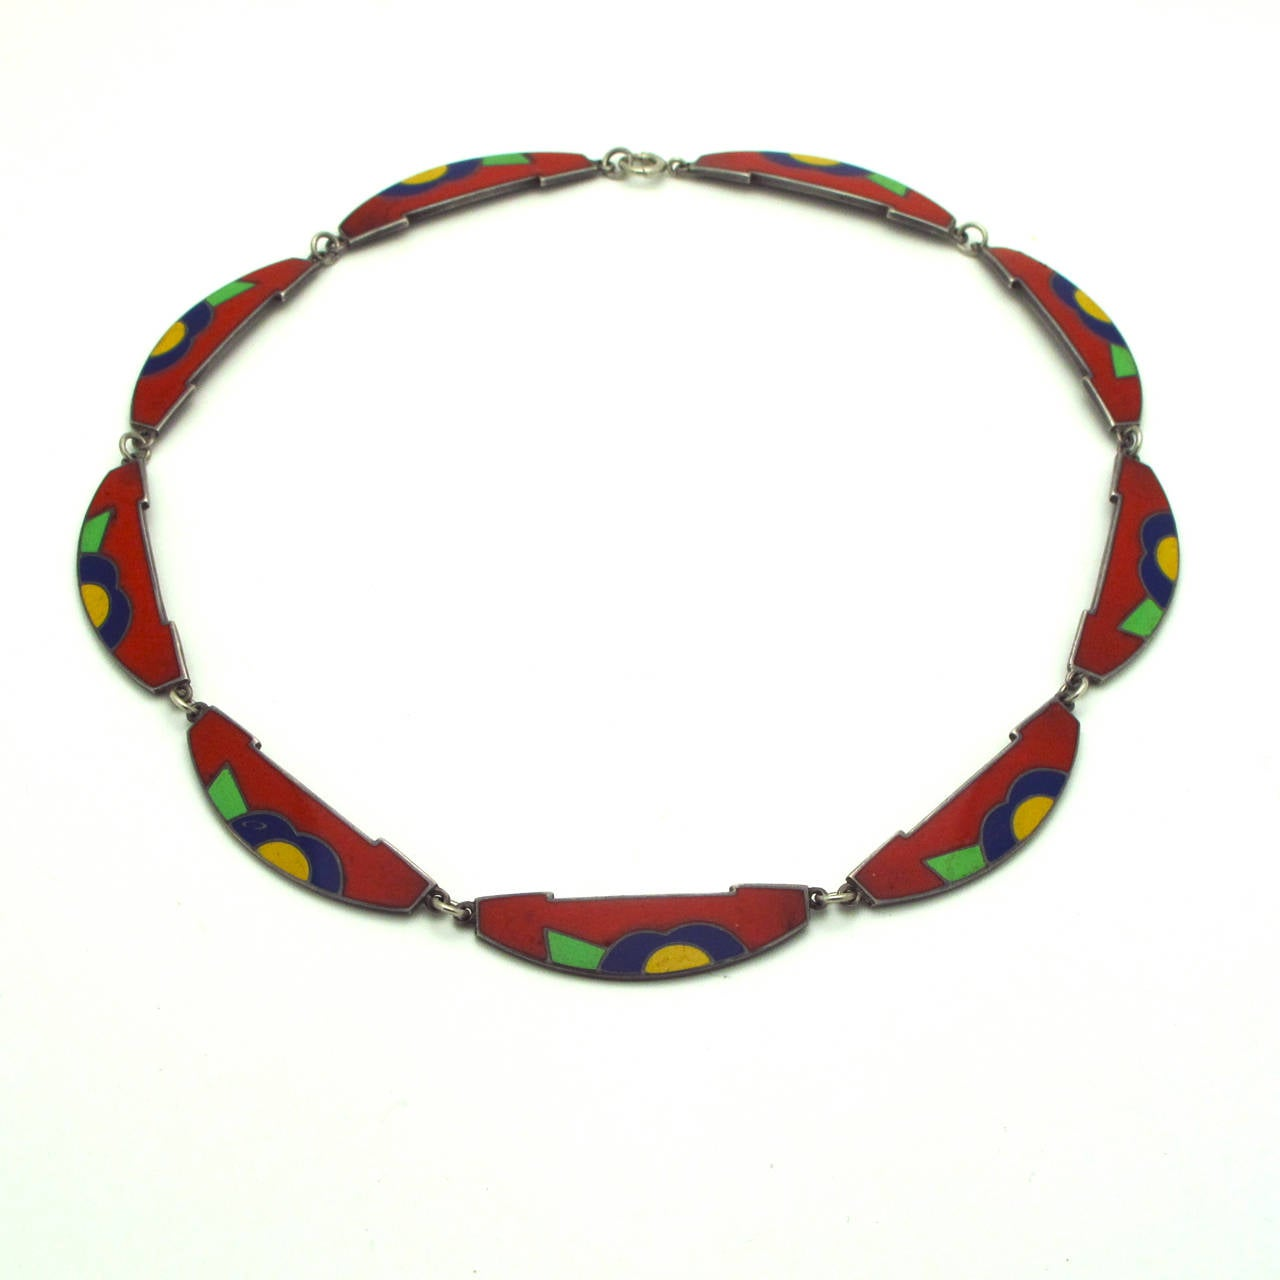 This enamel inlay and scallop necklace in red, blue, yellow and green enamel is vibrant and stunning to the eye. Set on a background of sterling silver with a beautiful patina to bring out the whimsical combination of colors that rests beautifully